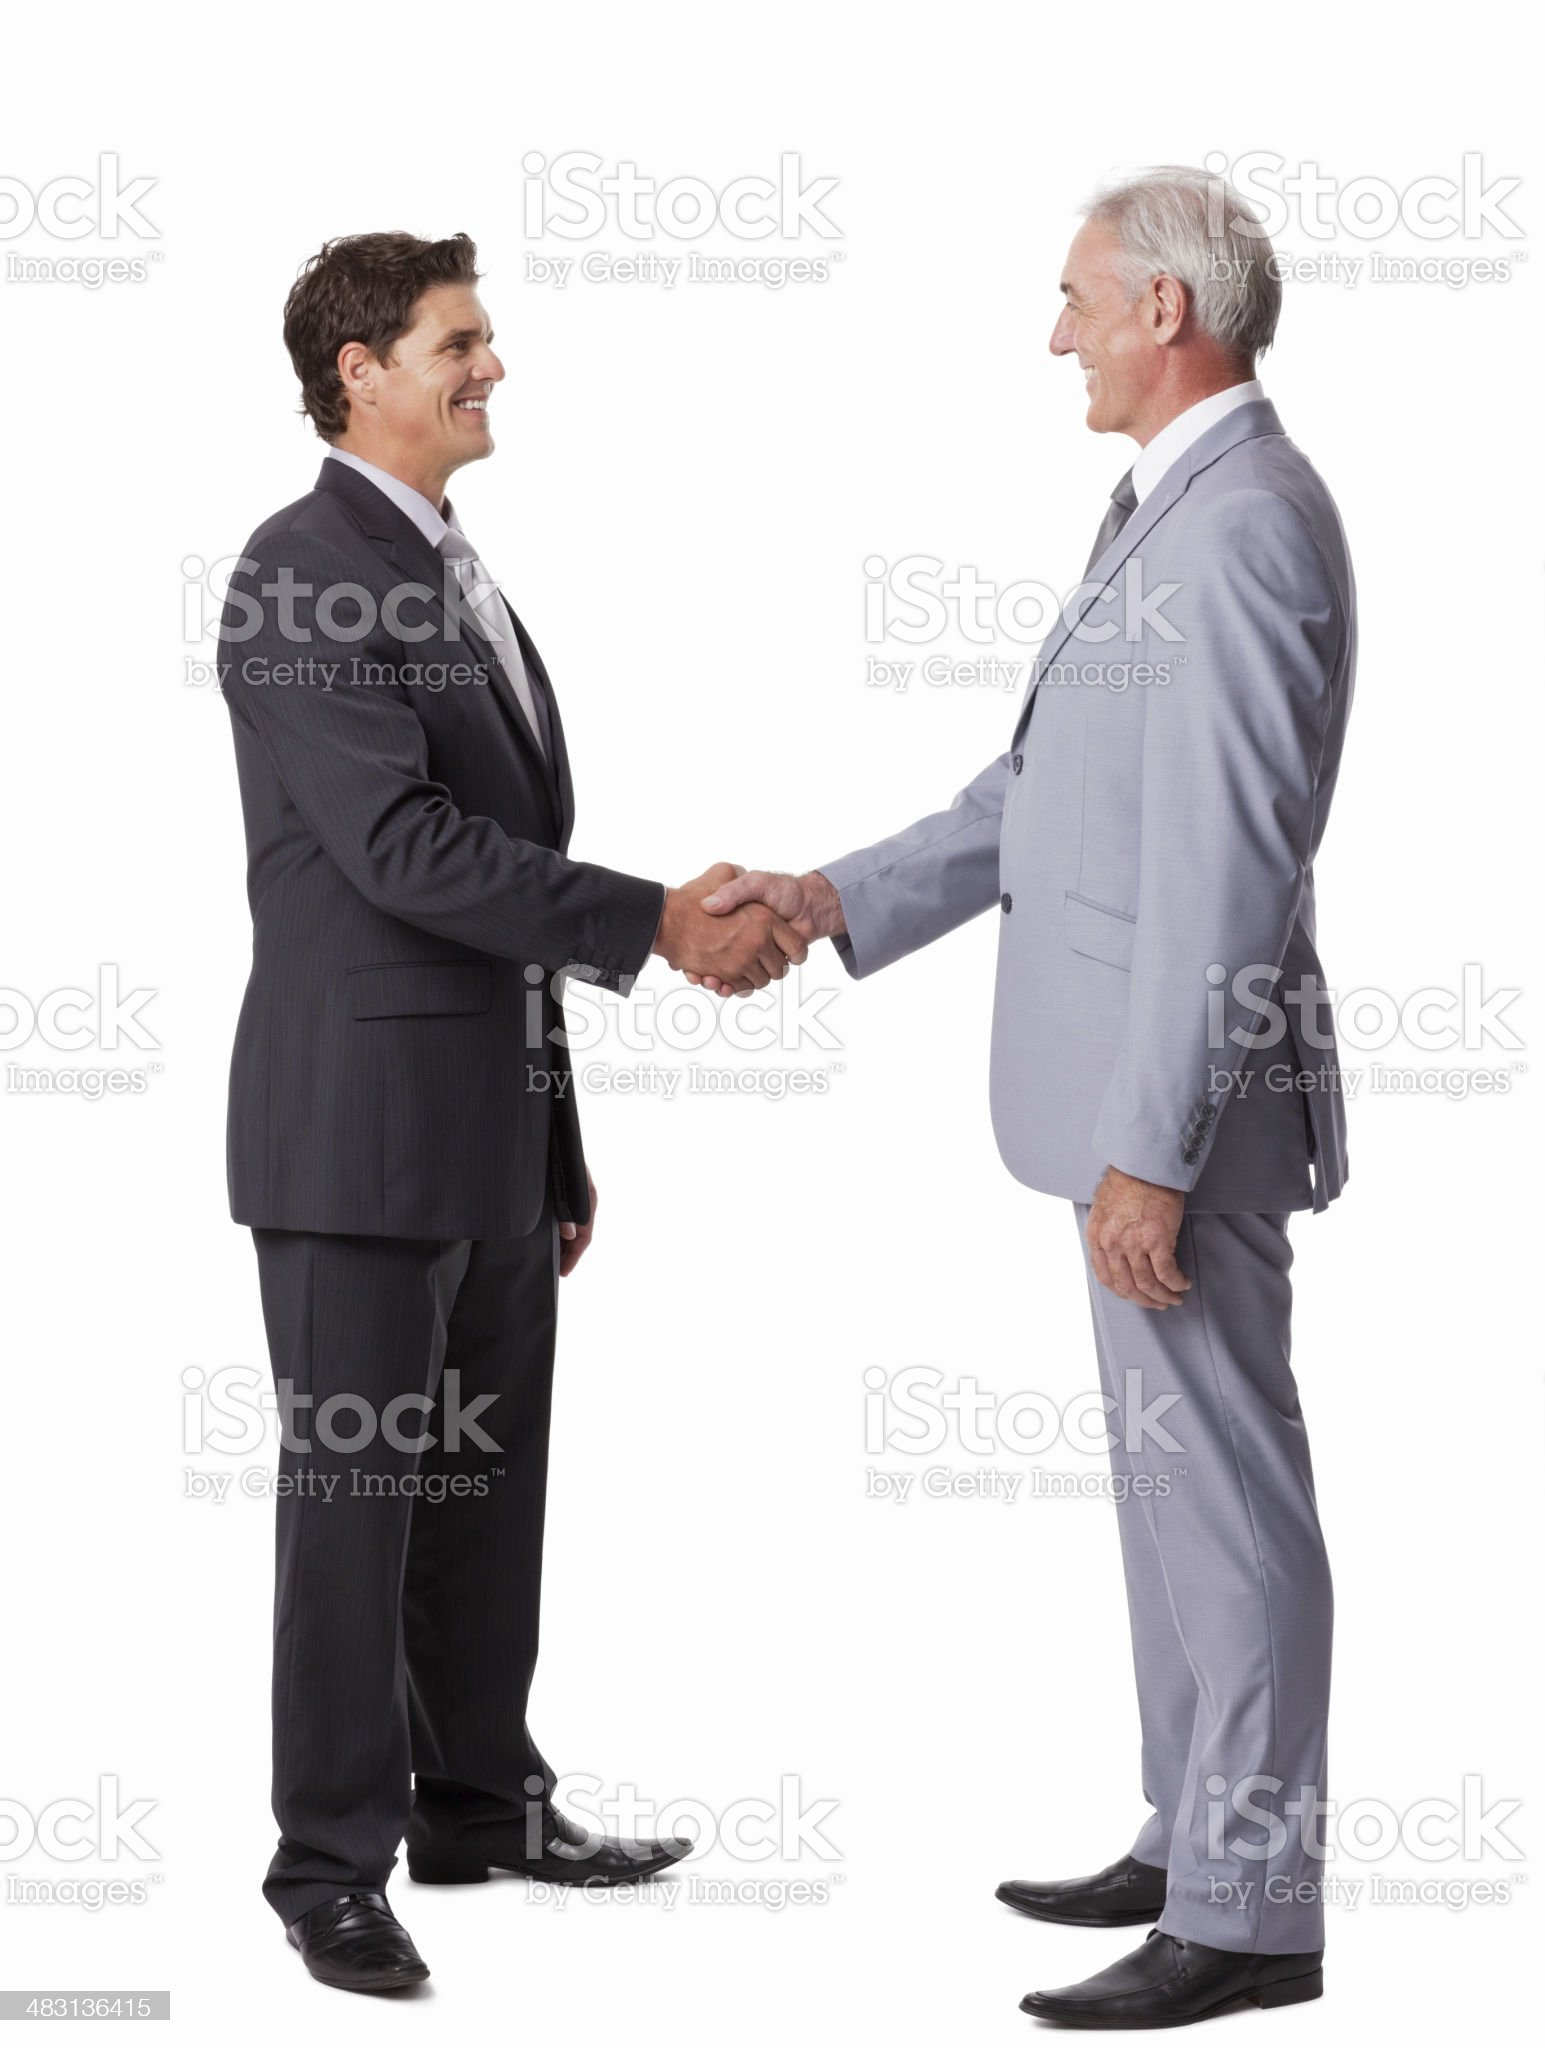 Businessmen Shaking Hands - Isolated royalty-free stock photo